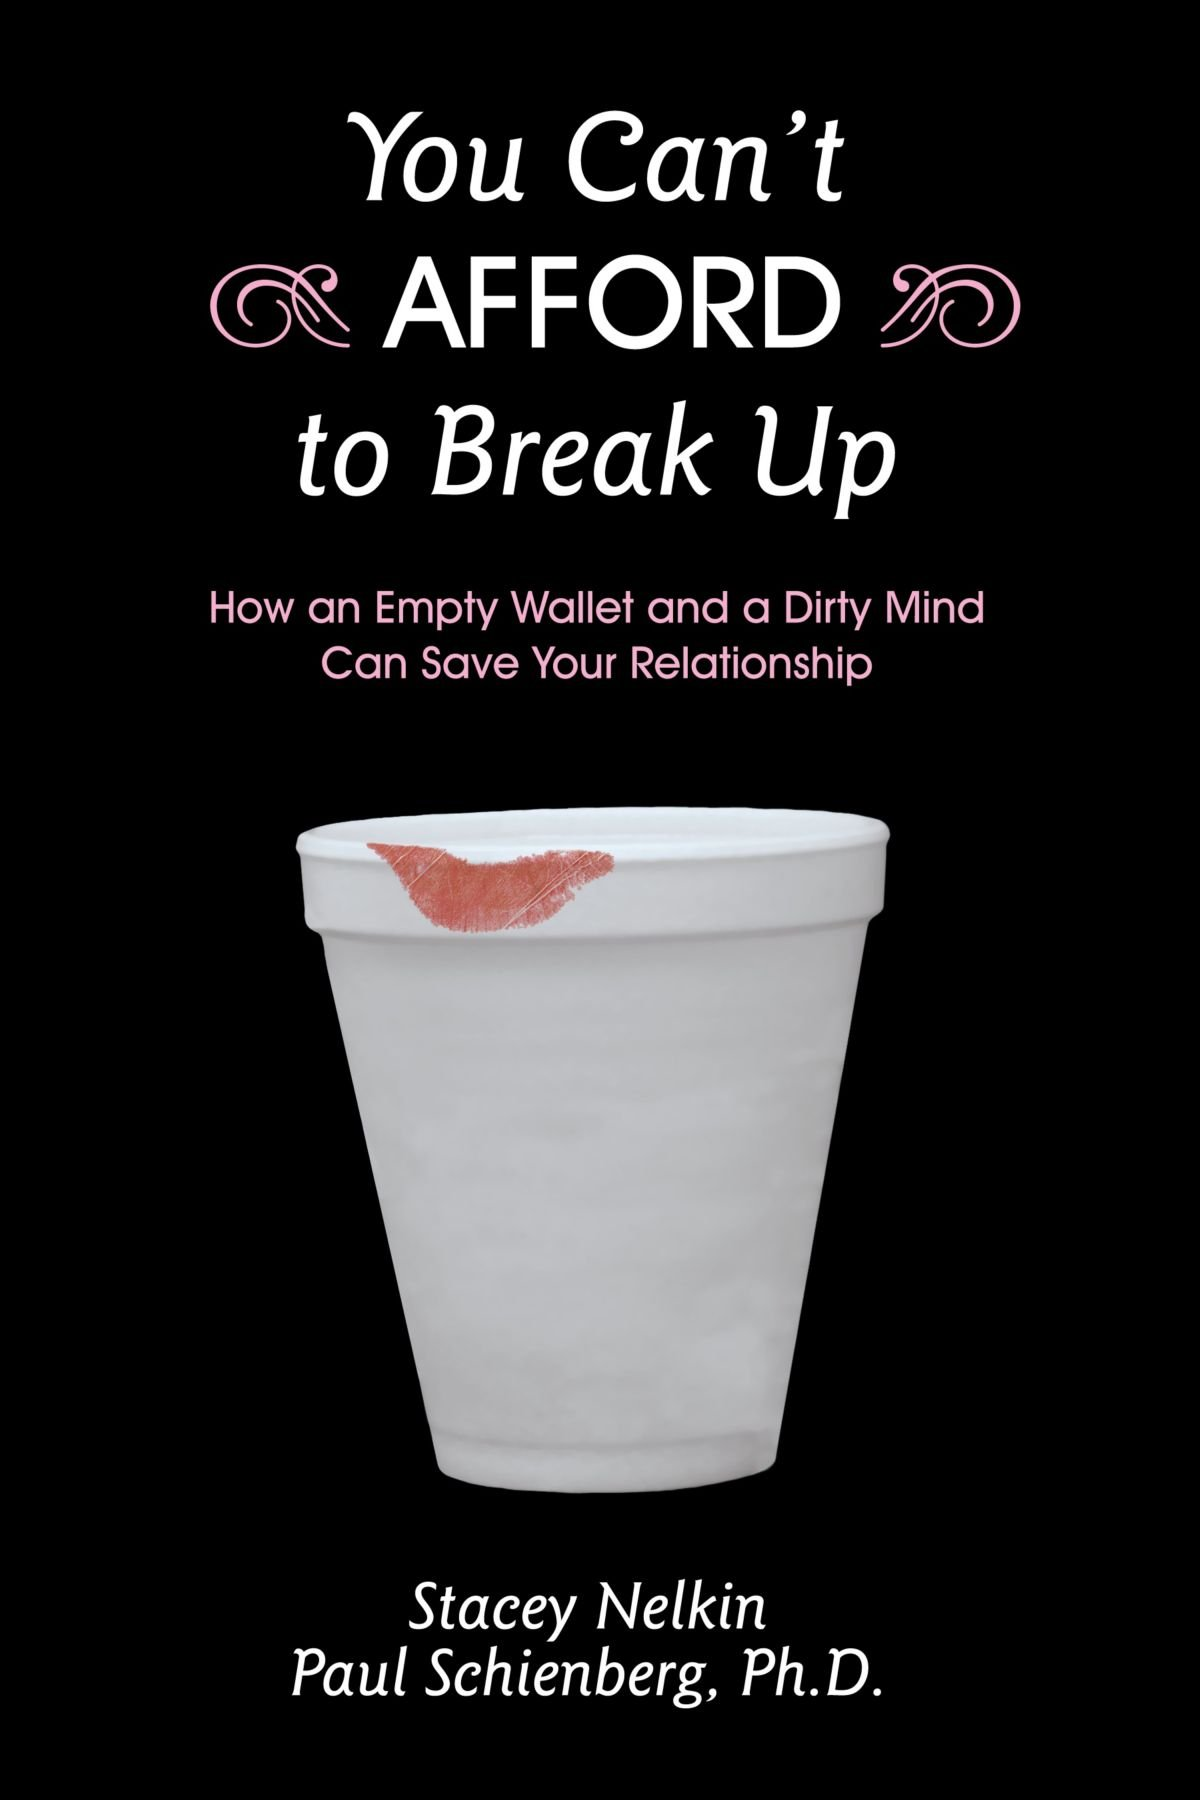 Can breaking up save a relationship